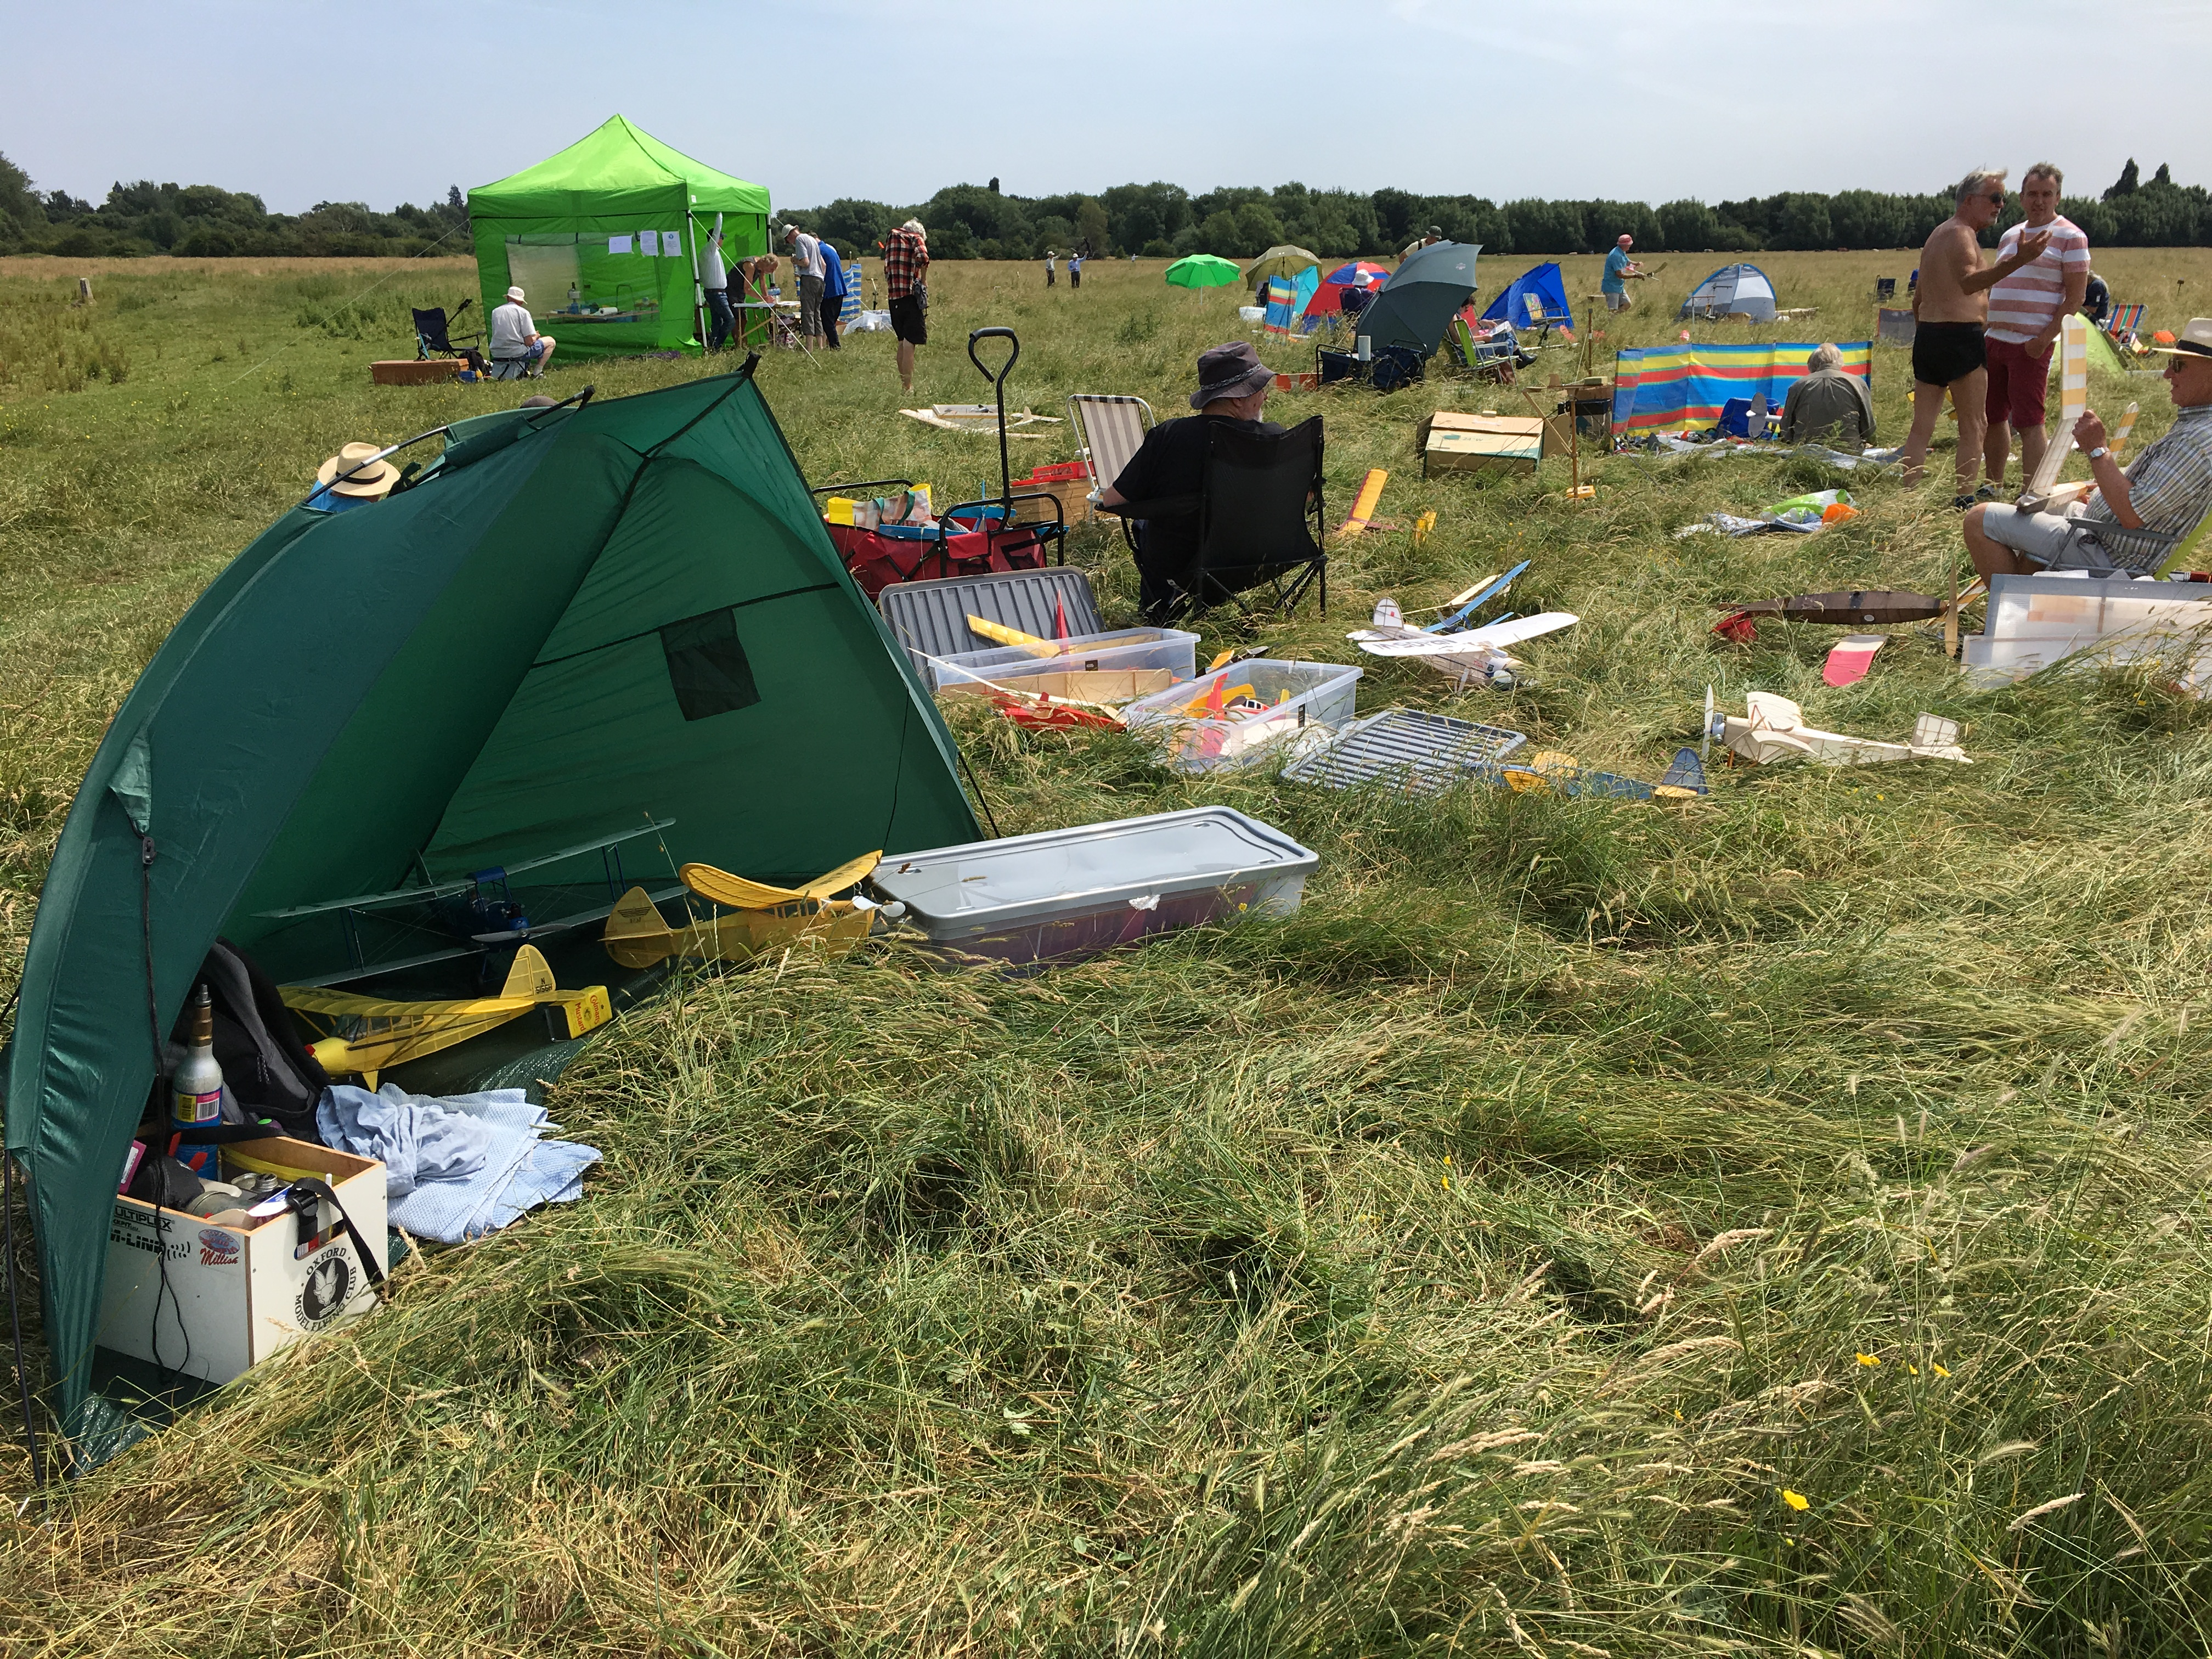 The assembled 'camp' for the Dreaming Spires FF competition